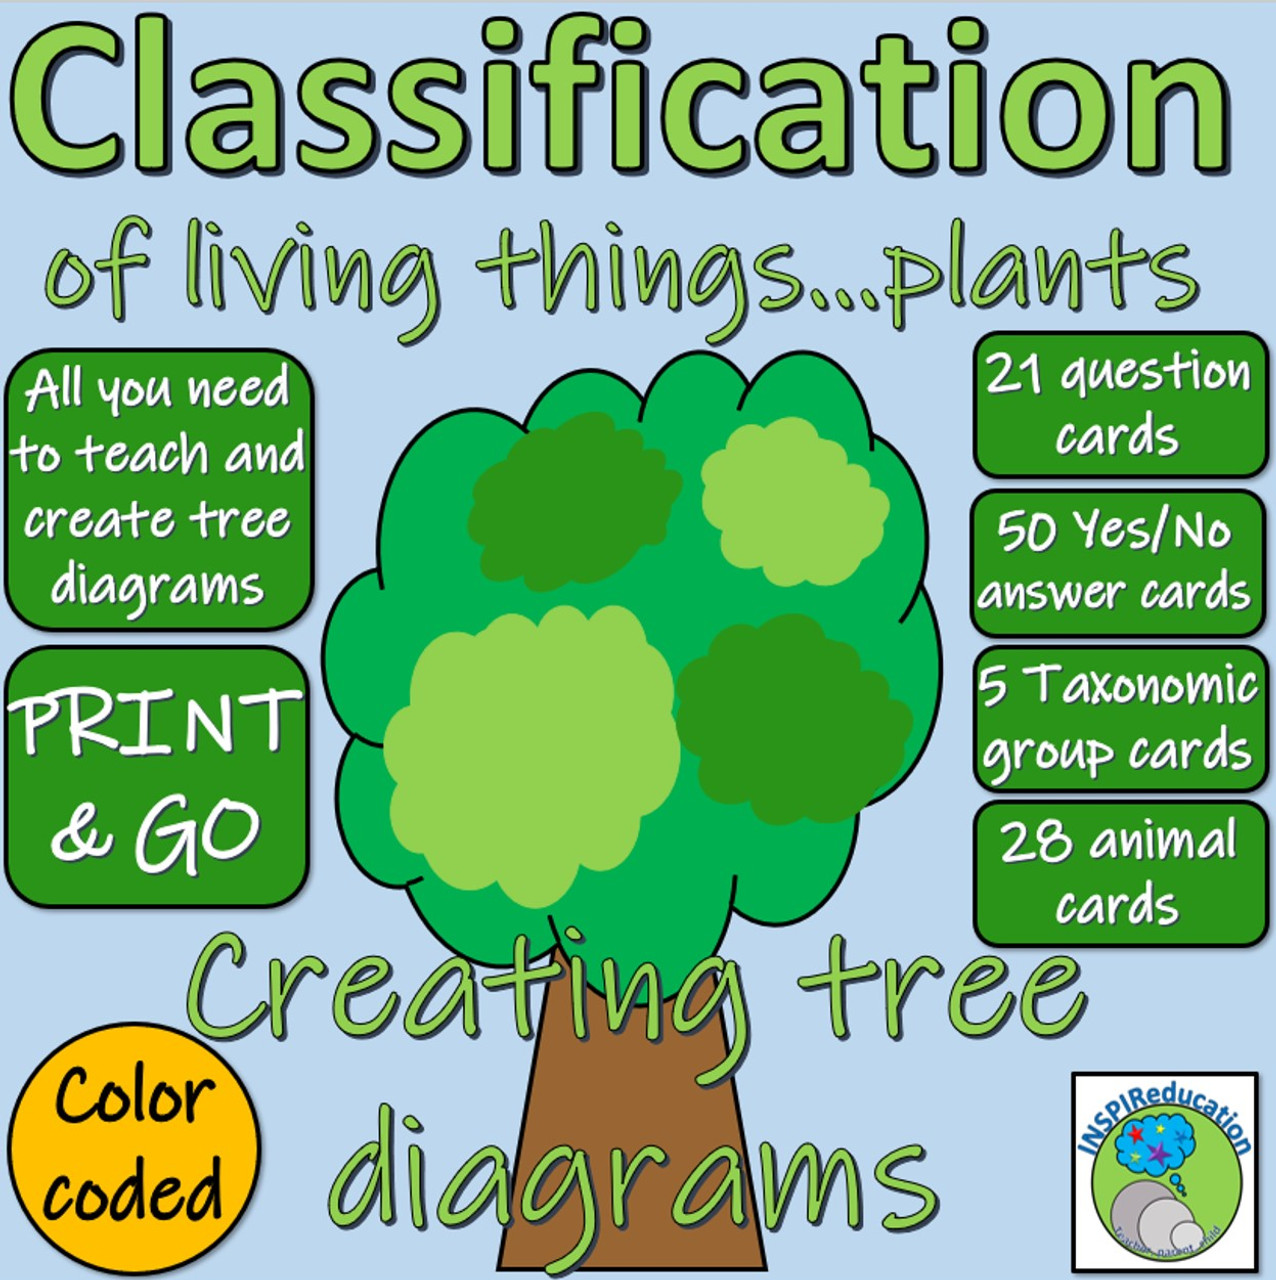 small resolution of Classification of Green Plants - Decision Trees (Yes/No) Questions - Branch  diagrams - Amped Up Learning